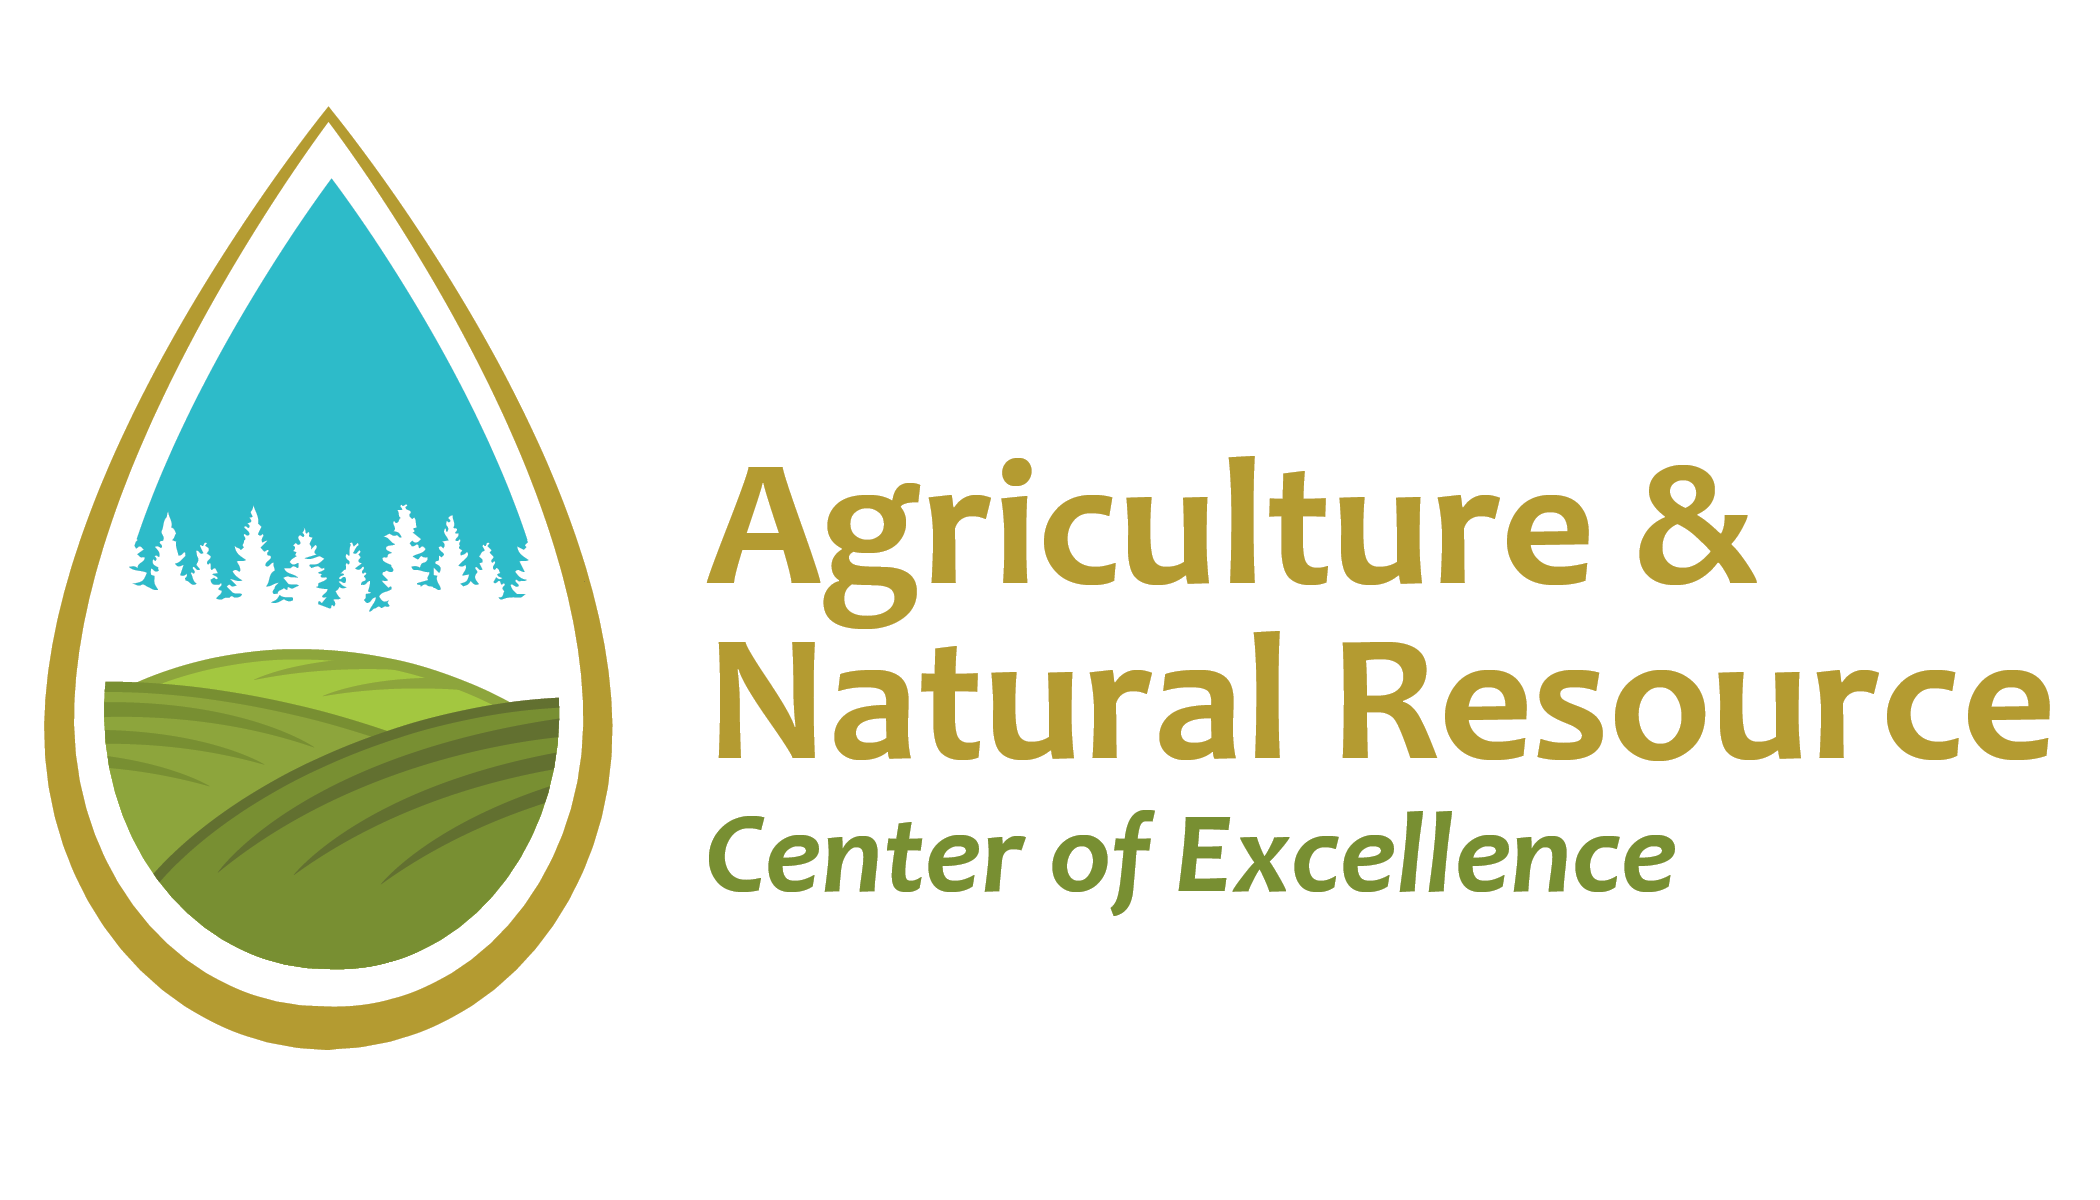 Logo of Agriculture & Natural Resource Center of Excellence, a teardrop shape contains silhouettes of evergreen trees and green fields.